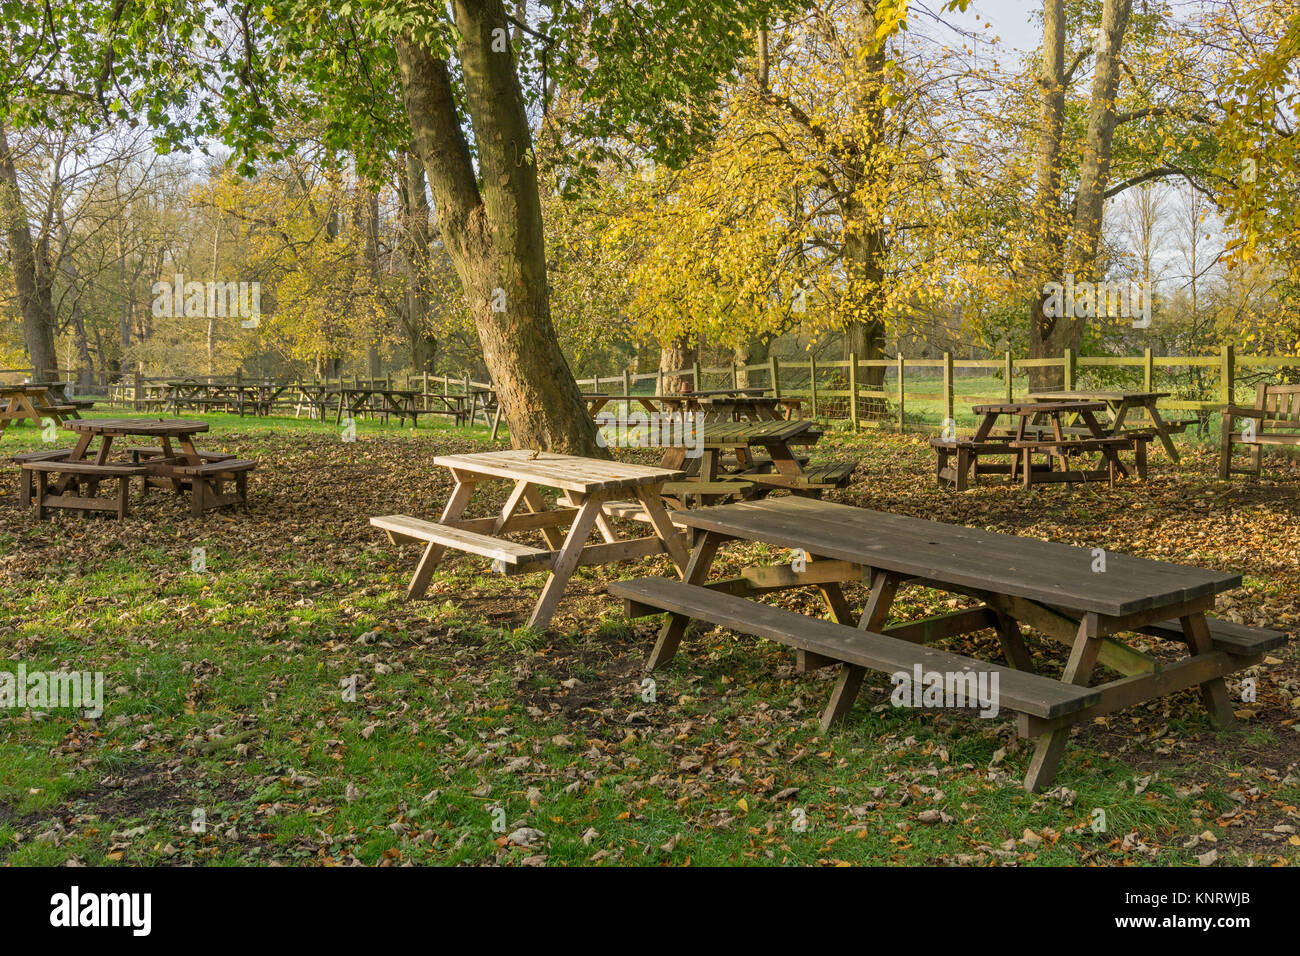 An outdoor eating area in Winter; attached to Towcester Mill Brewery and Tap Room, Towcester UK - Stock Image